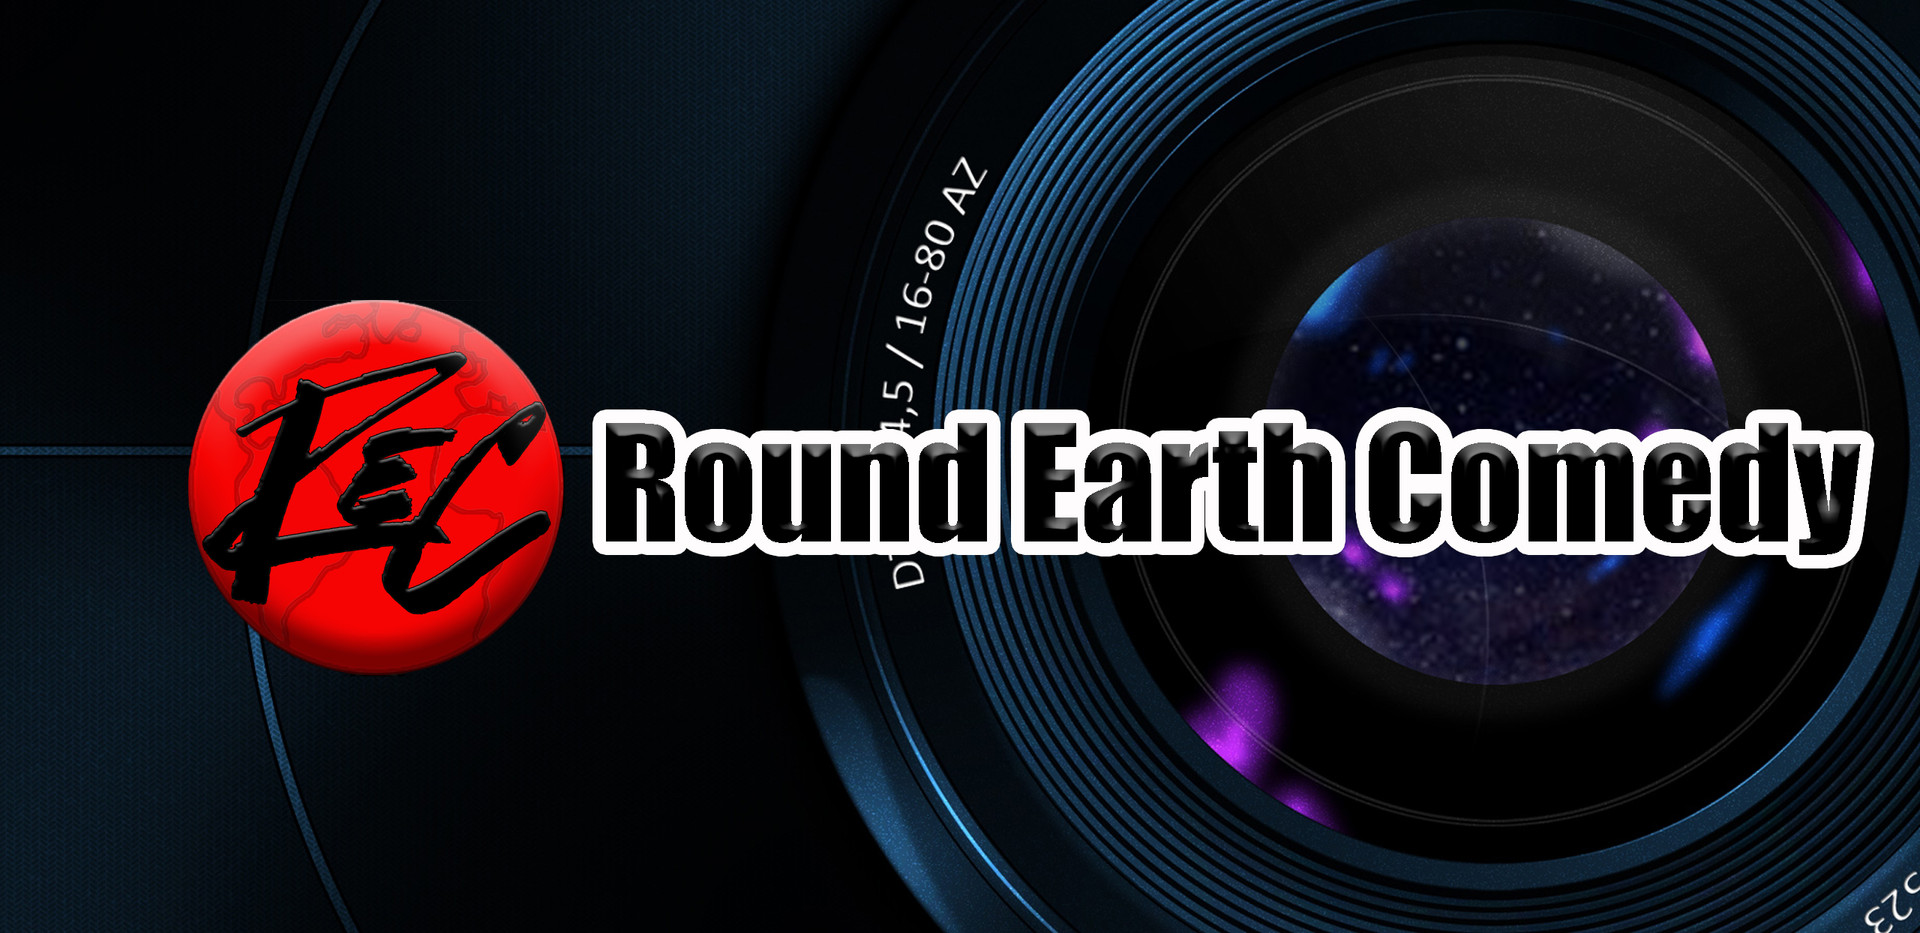 Round Earth Comedy